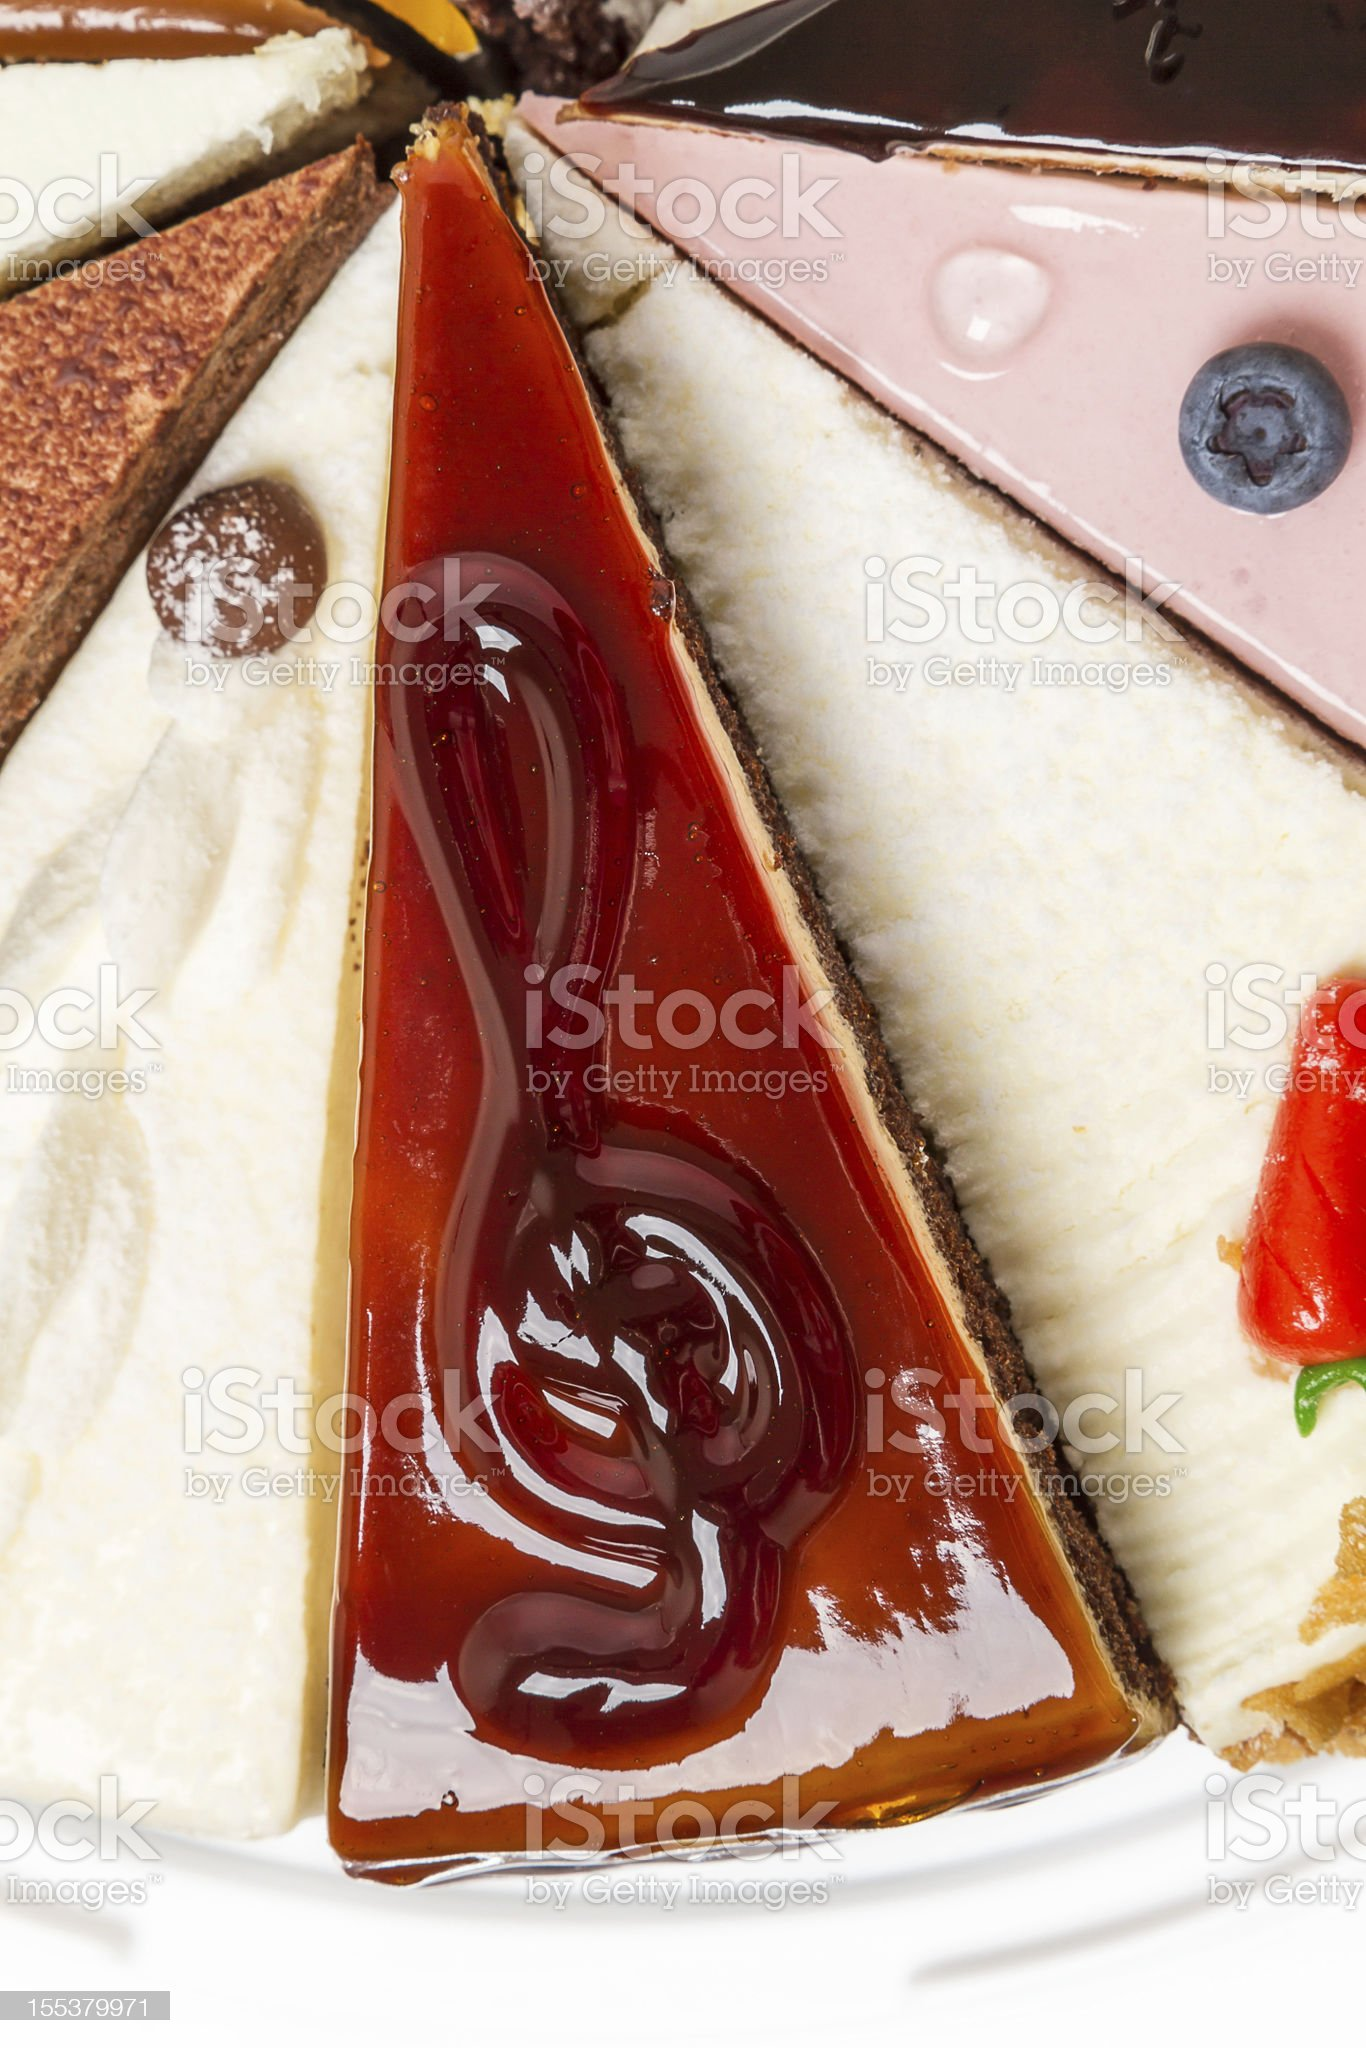 Piece of cake and a treble clef royalty-free stock photo